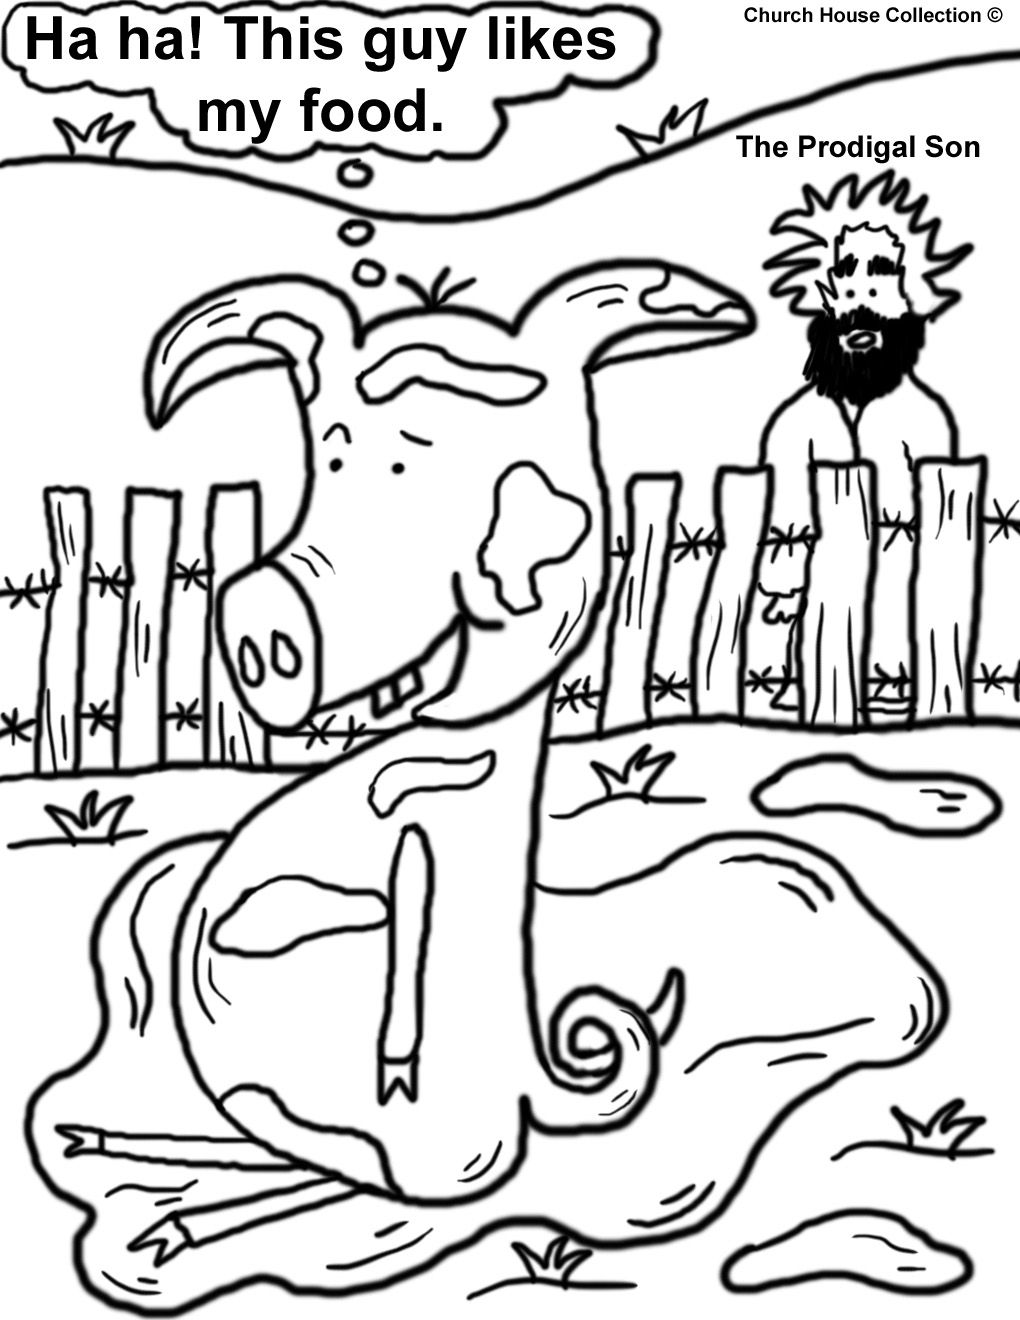 The Prodgial Son Coloring Page   Sunday school   Pinterest ...